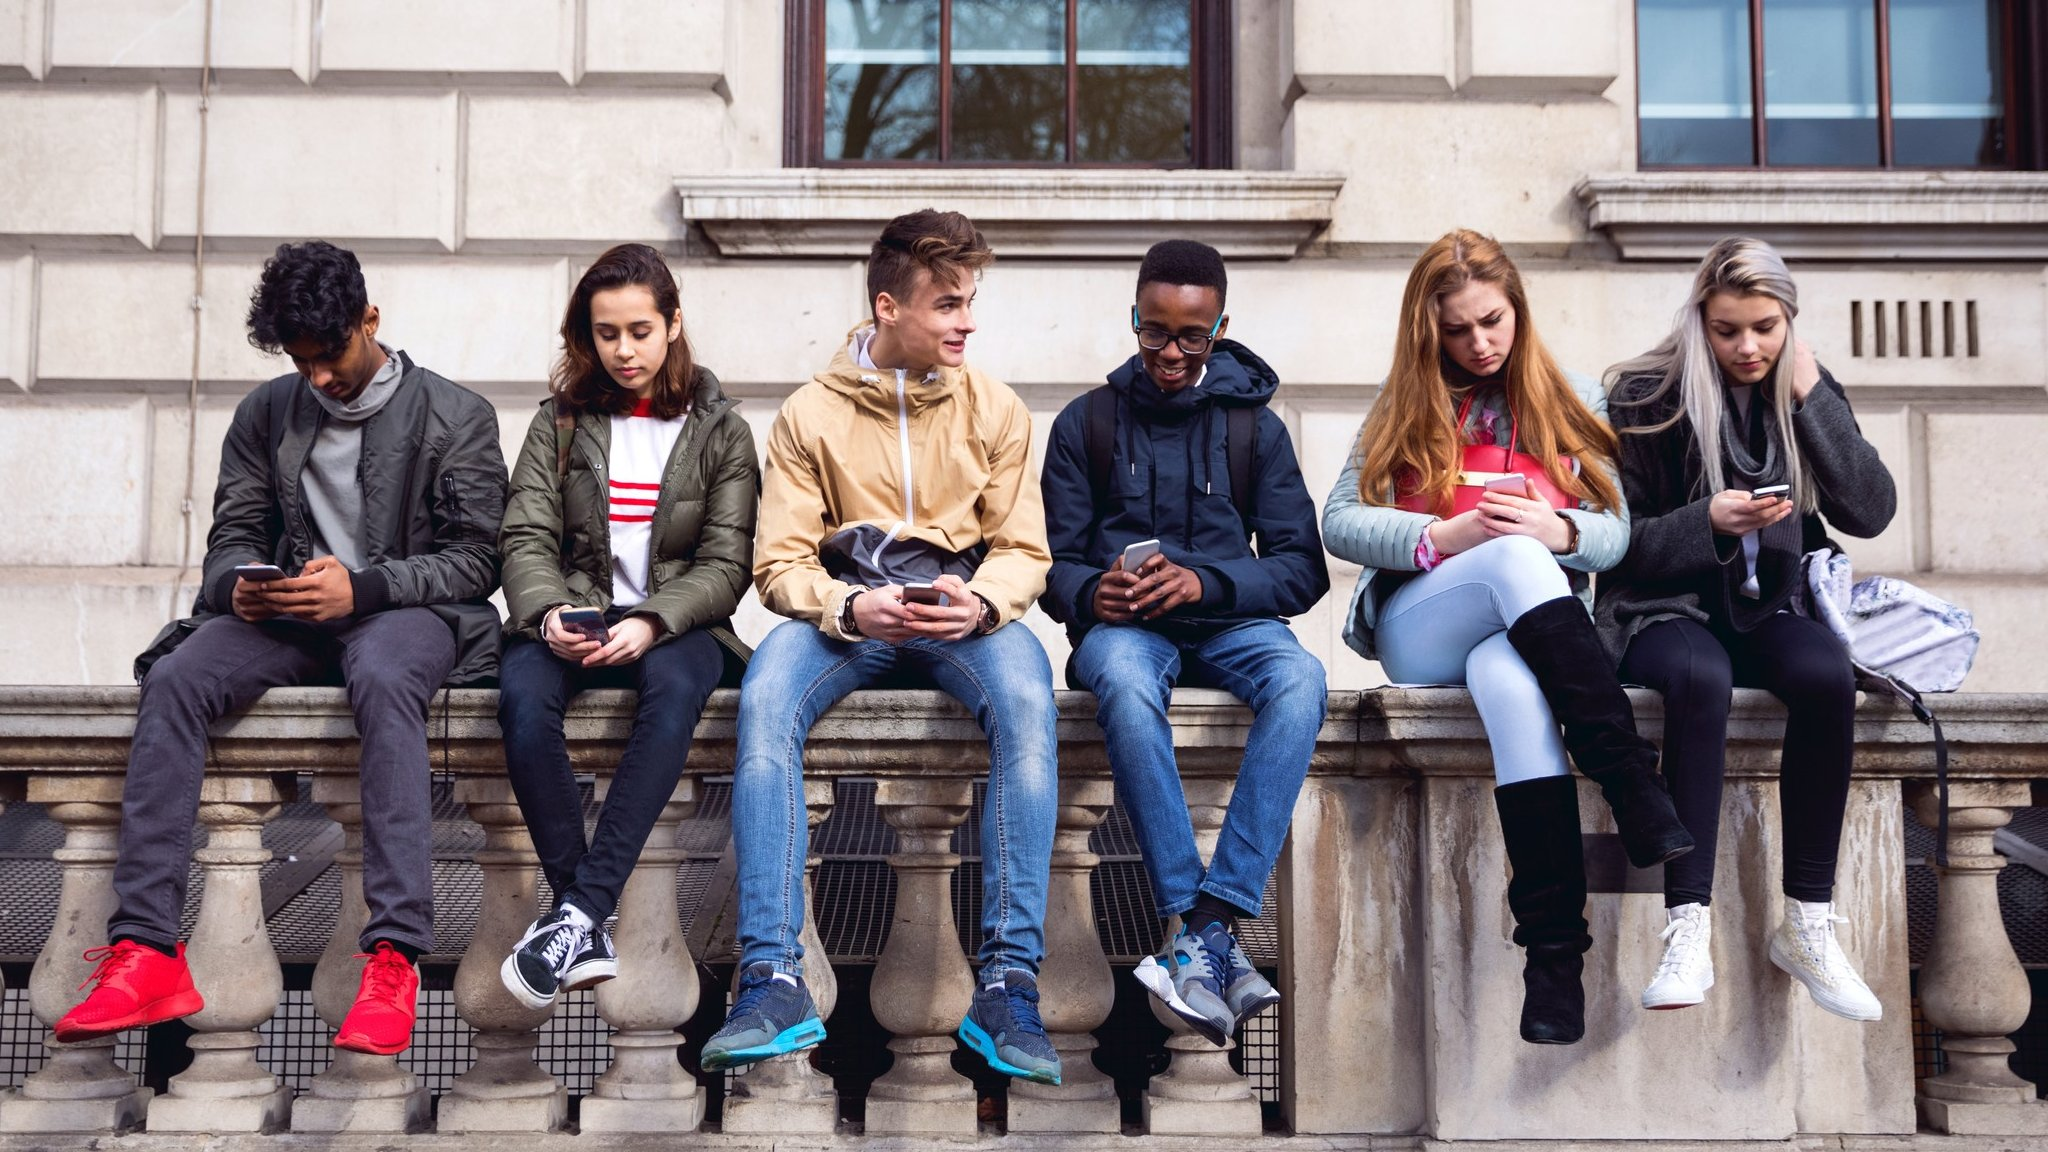 Under-18s face 'like' and 'streaks' limits on social media